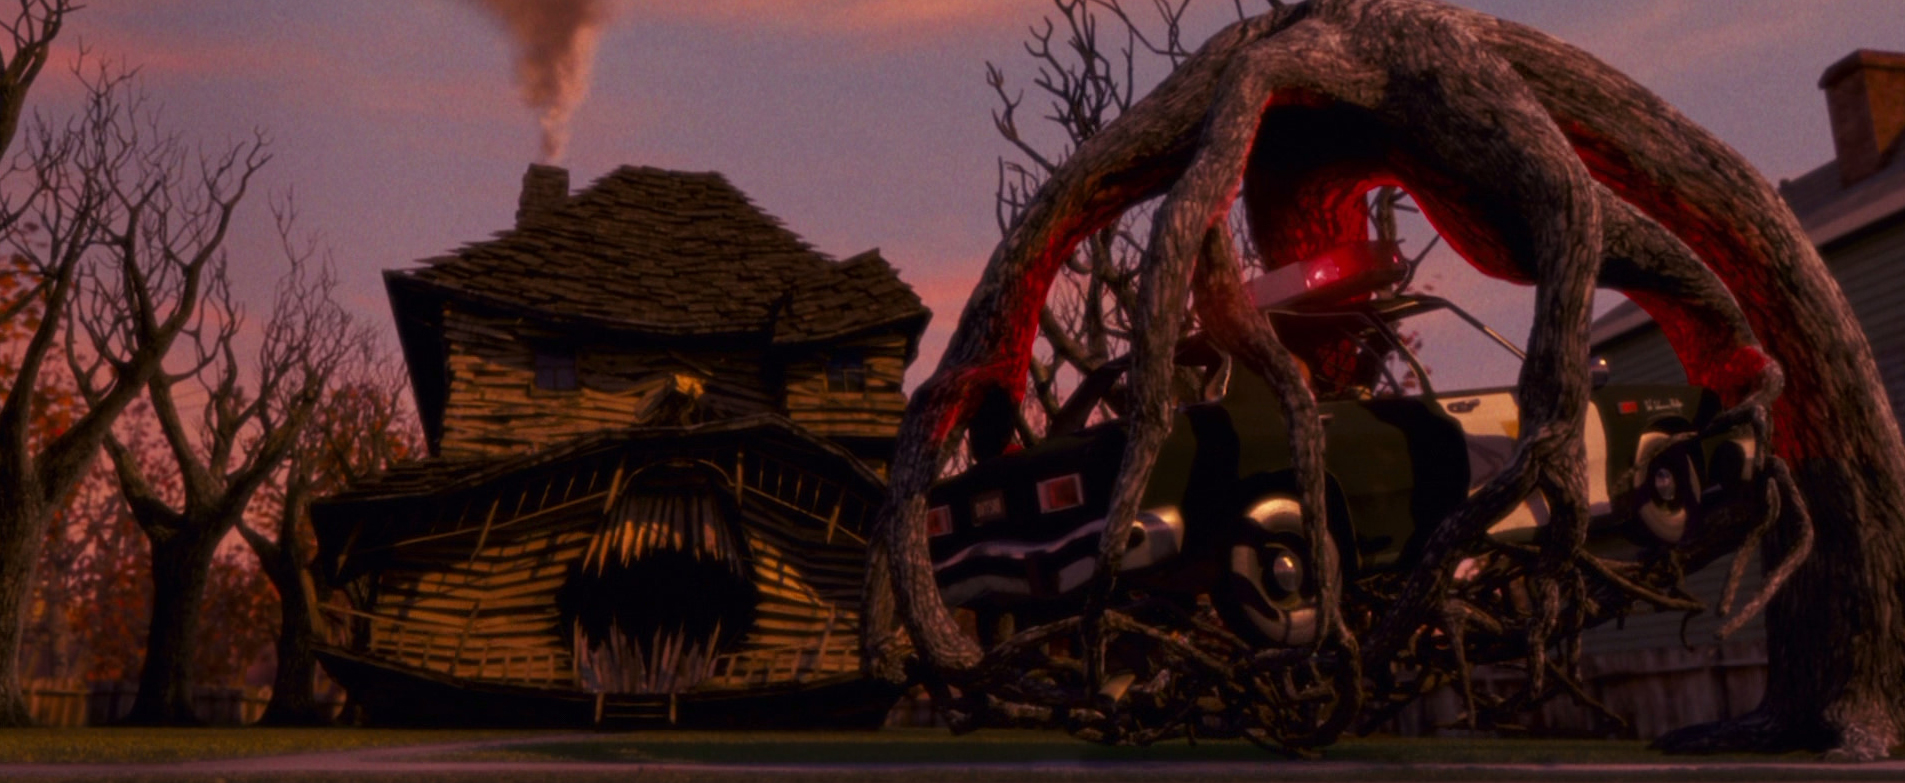 Monster House 2006 That Was A Bit Mental